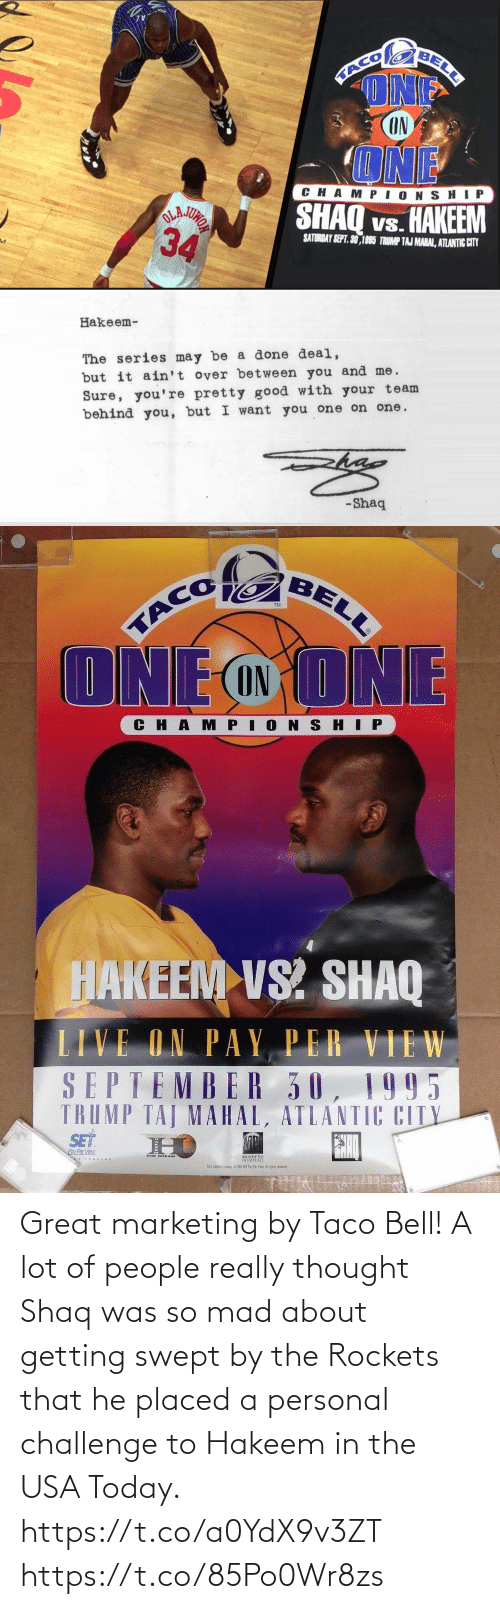 Shaq: Great marketing by Taco Bell! A lot of people really thought Shaq was so mad about getting swept by the Rockets that he placed a personal challenge to Hakeem in the USA Today. https://t.co/a0YdX9v3ZT https://t.co/85Po0Wr8zs